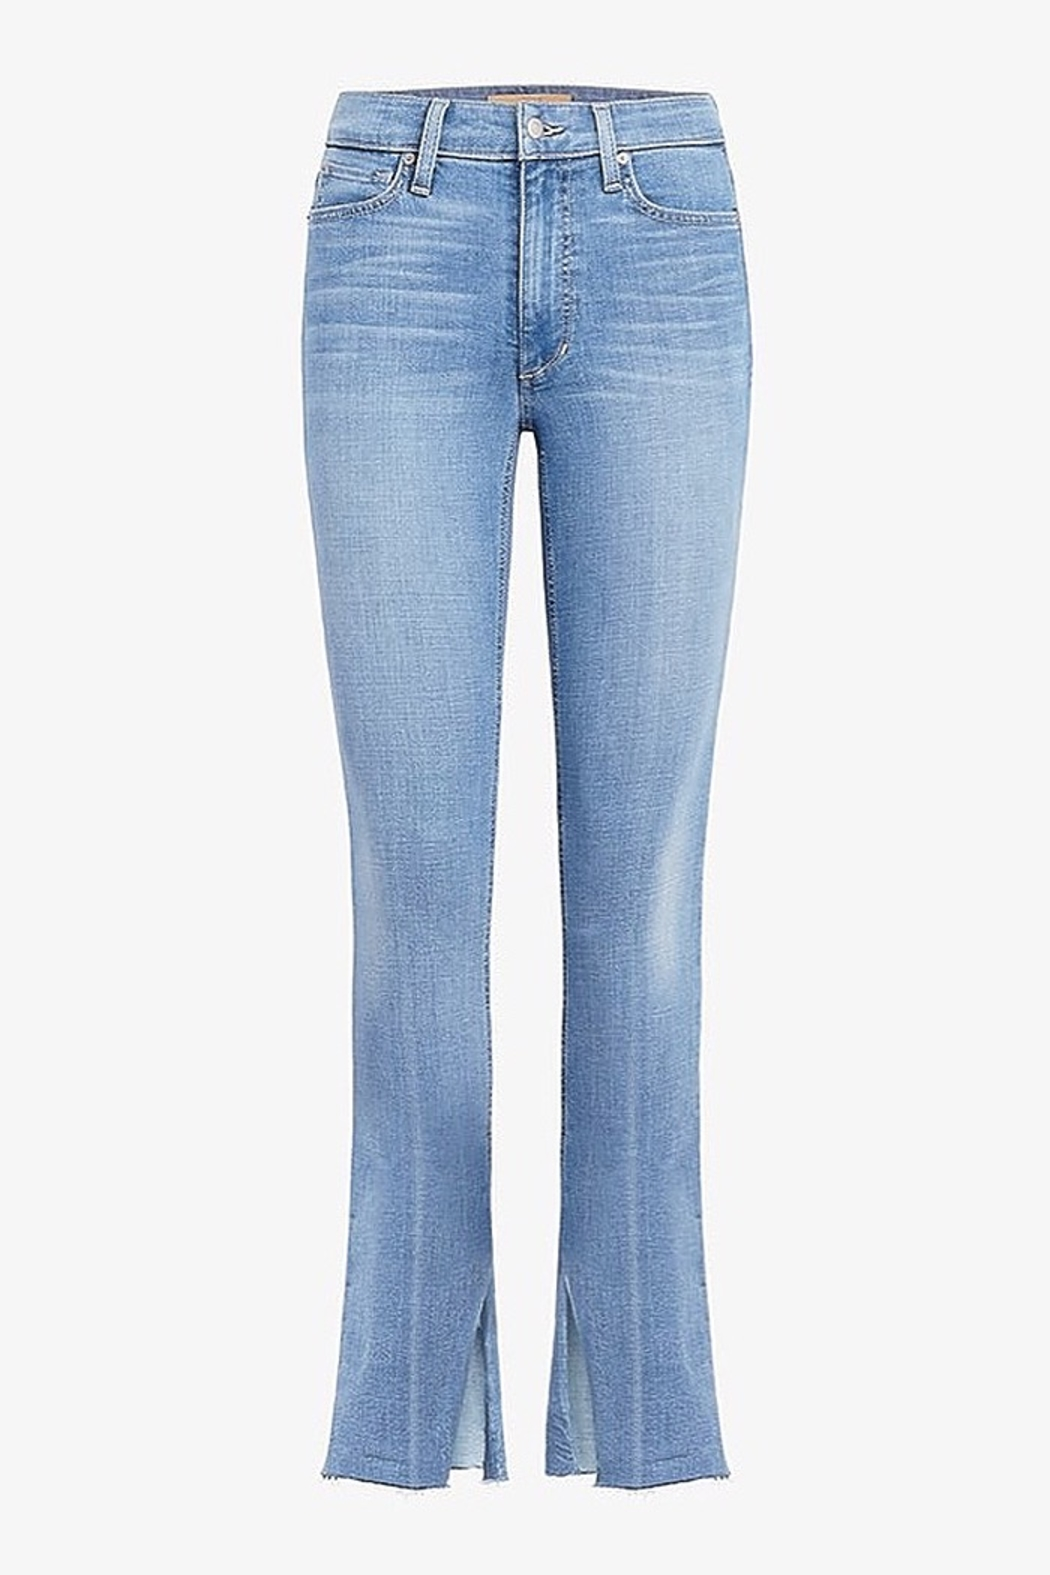 Joe's Jeans The Microflare Slit Raw Hem in Lorlai - Back Cropped Image